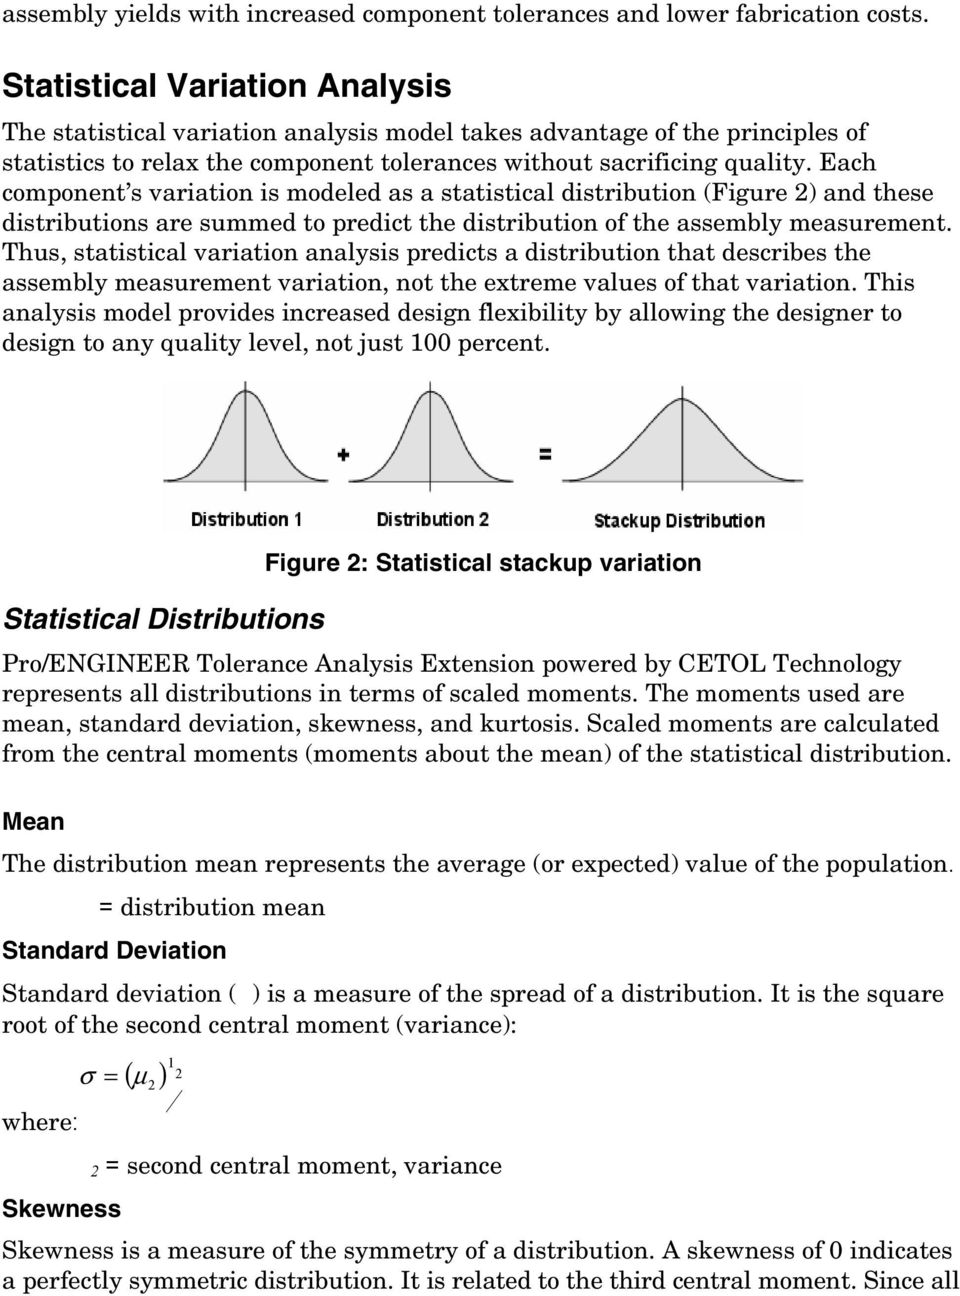 Each component s variation is modeled as a statistical distribution (Figure 2) and these distributions are summed to predict the distribution of the assembly measurement.